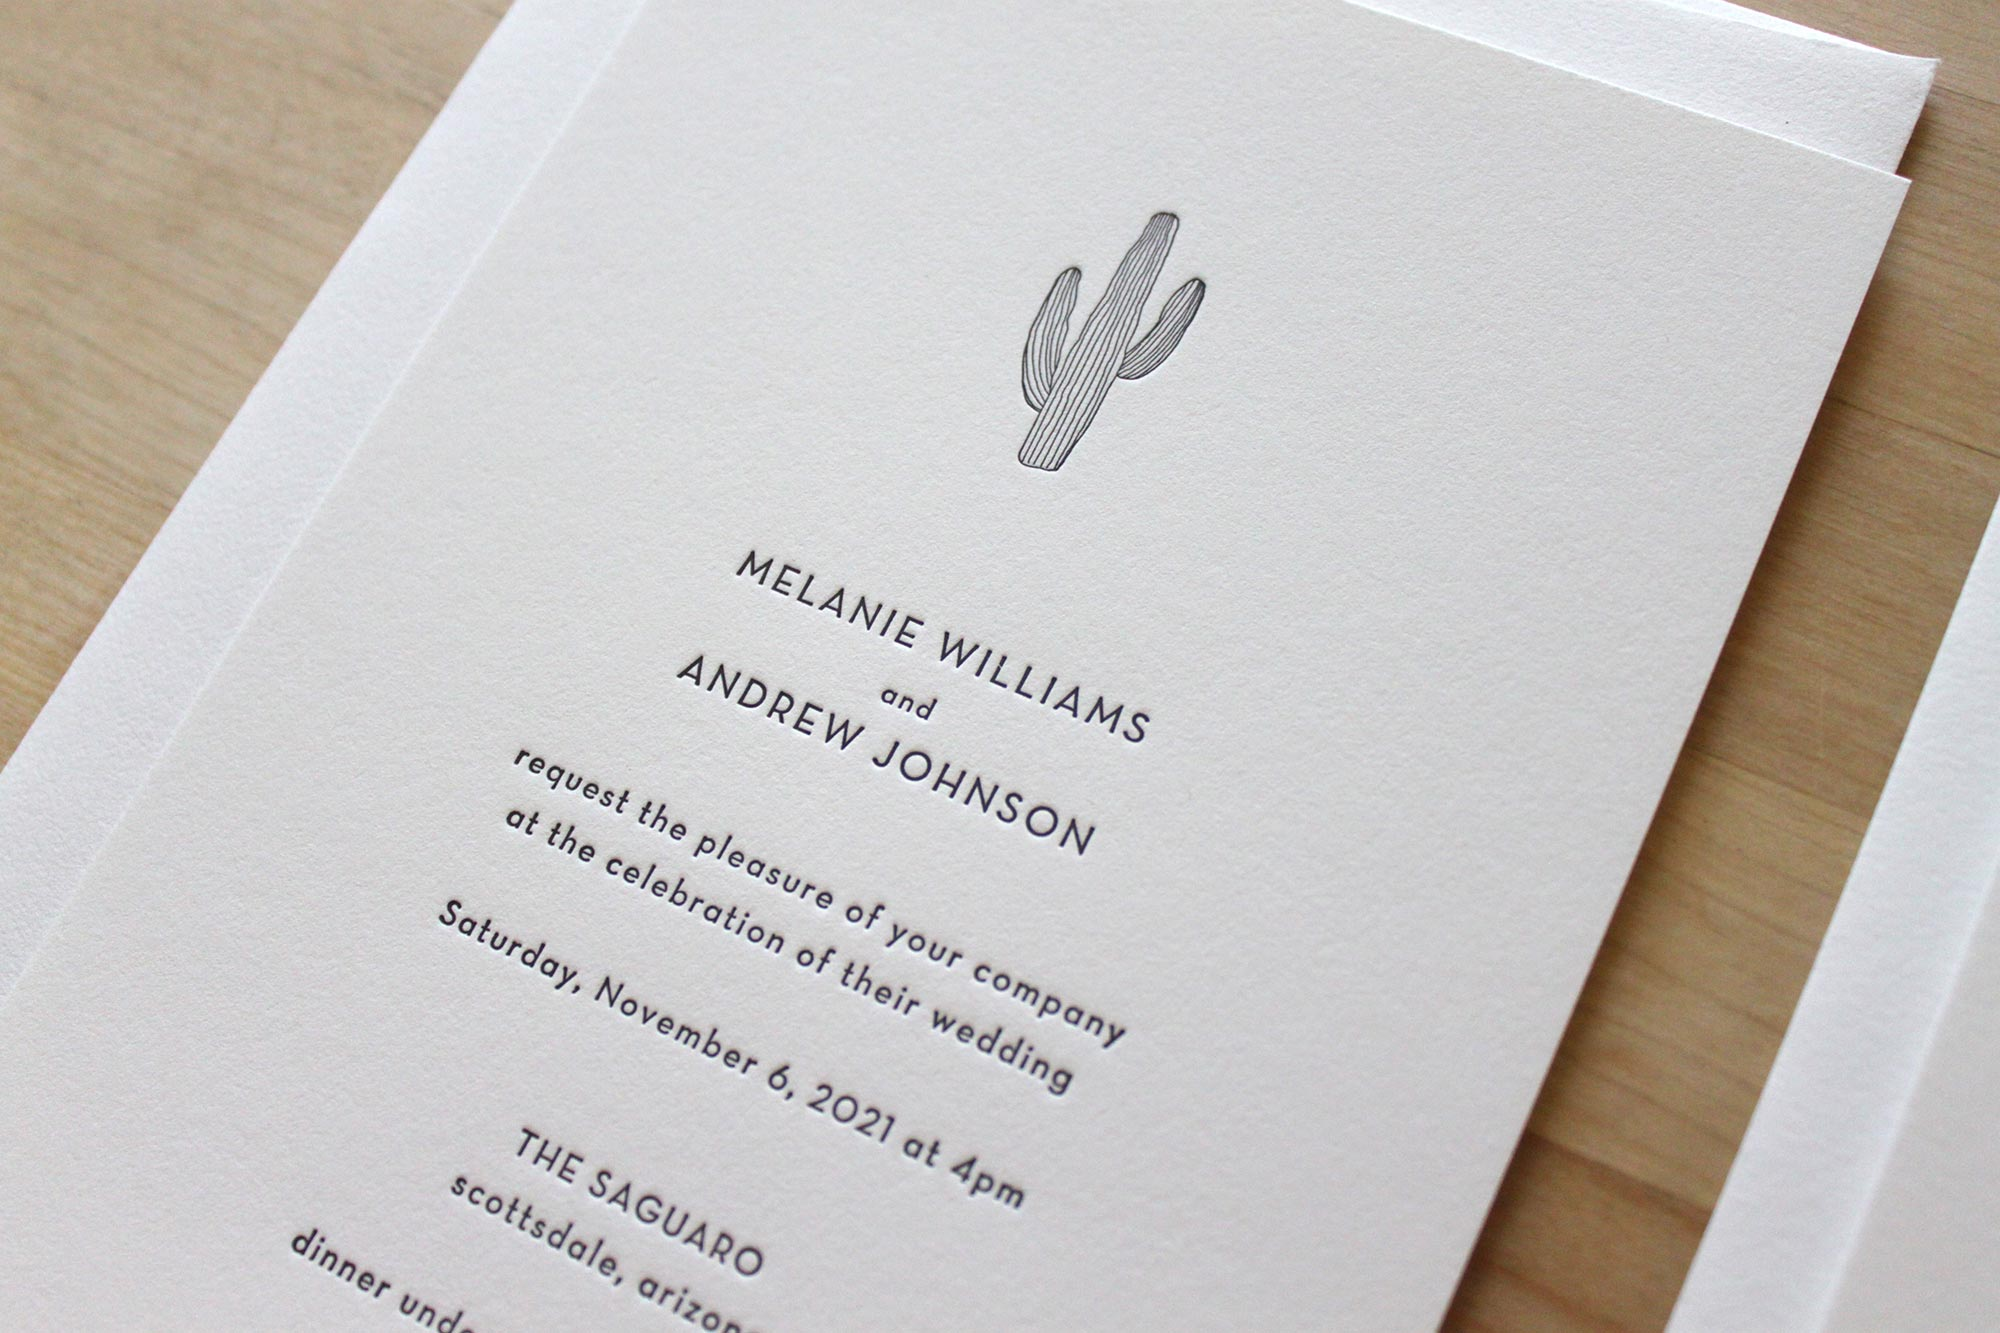 Saguaro-1-letterpress-wedding-invitations.jpg